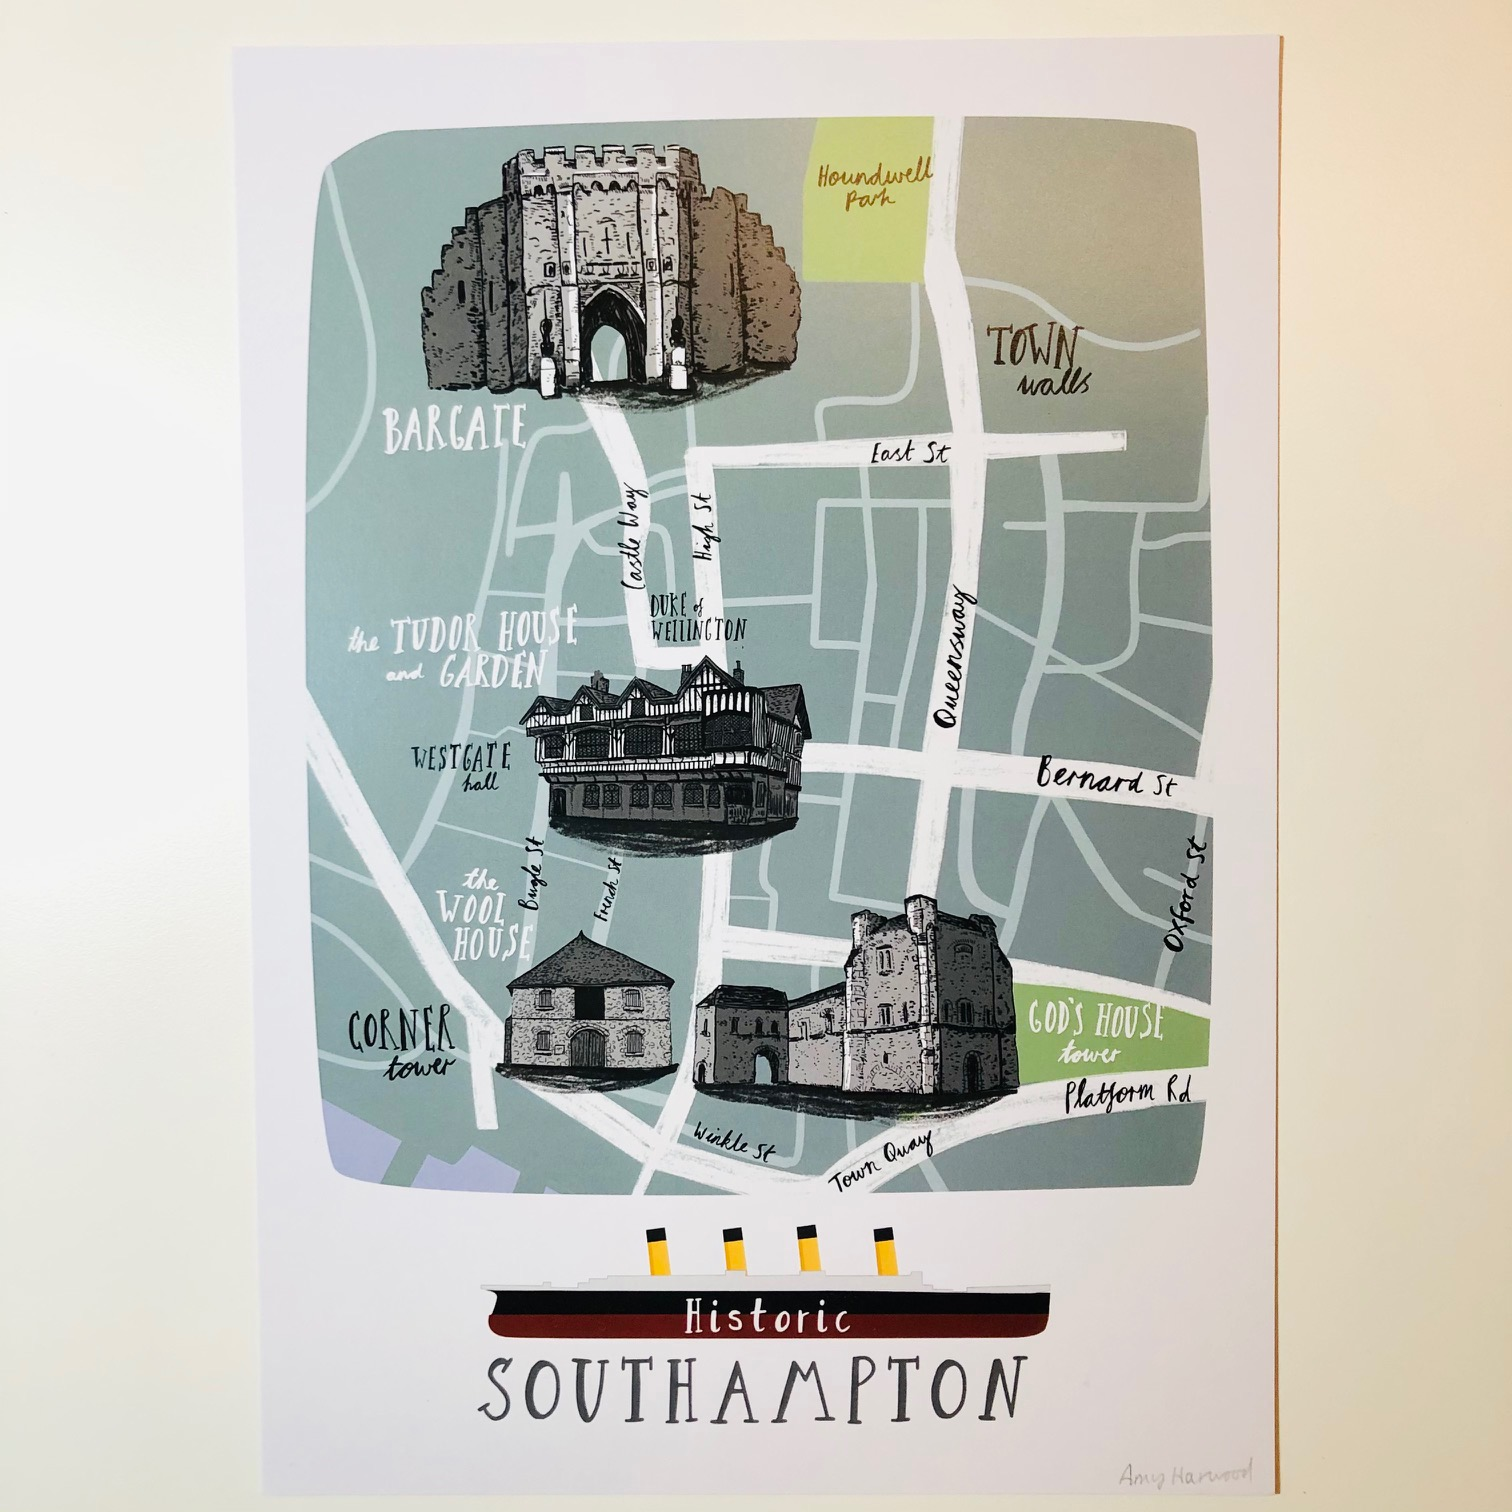 Illustrated Map of Southampton by Amy Harwood